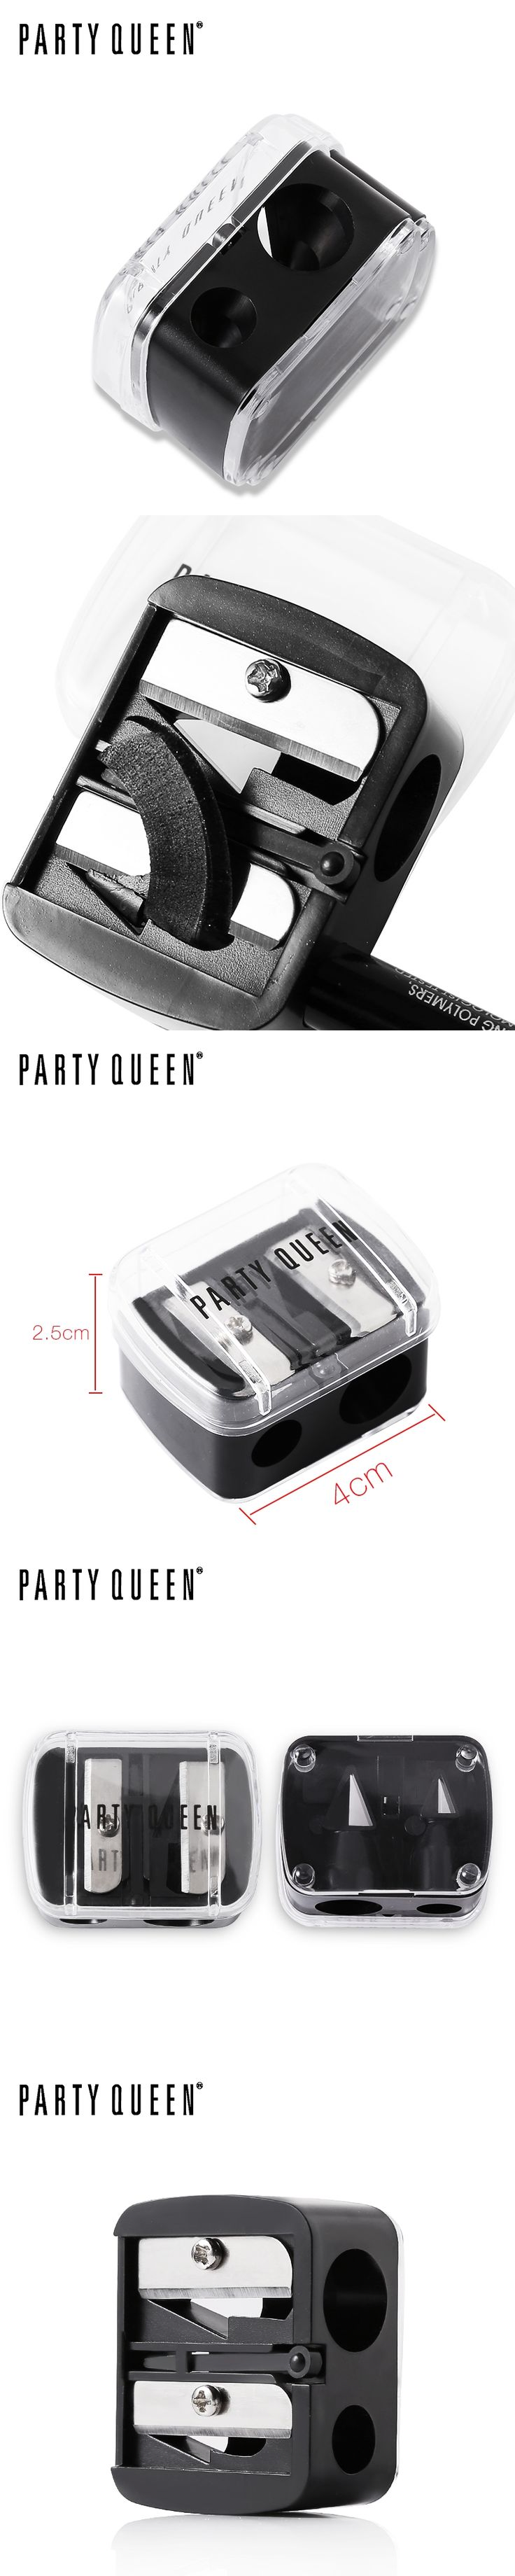 Party Queen Makeup Double Holes Eyeliner Pencil Sharpener Useful Cosmetic lipliner Pencil Sharpener Beauty High Quality